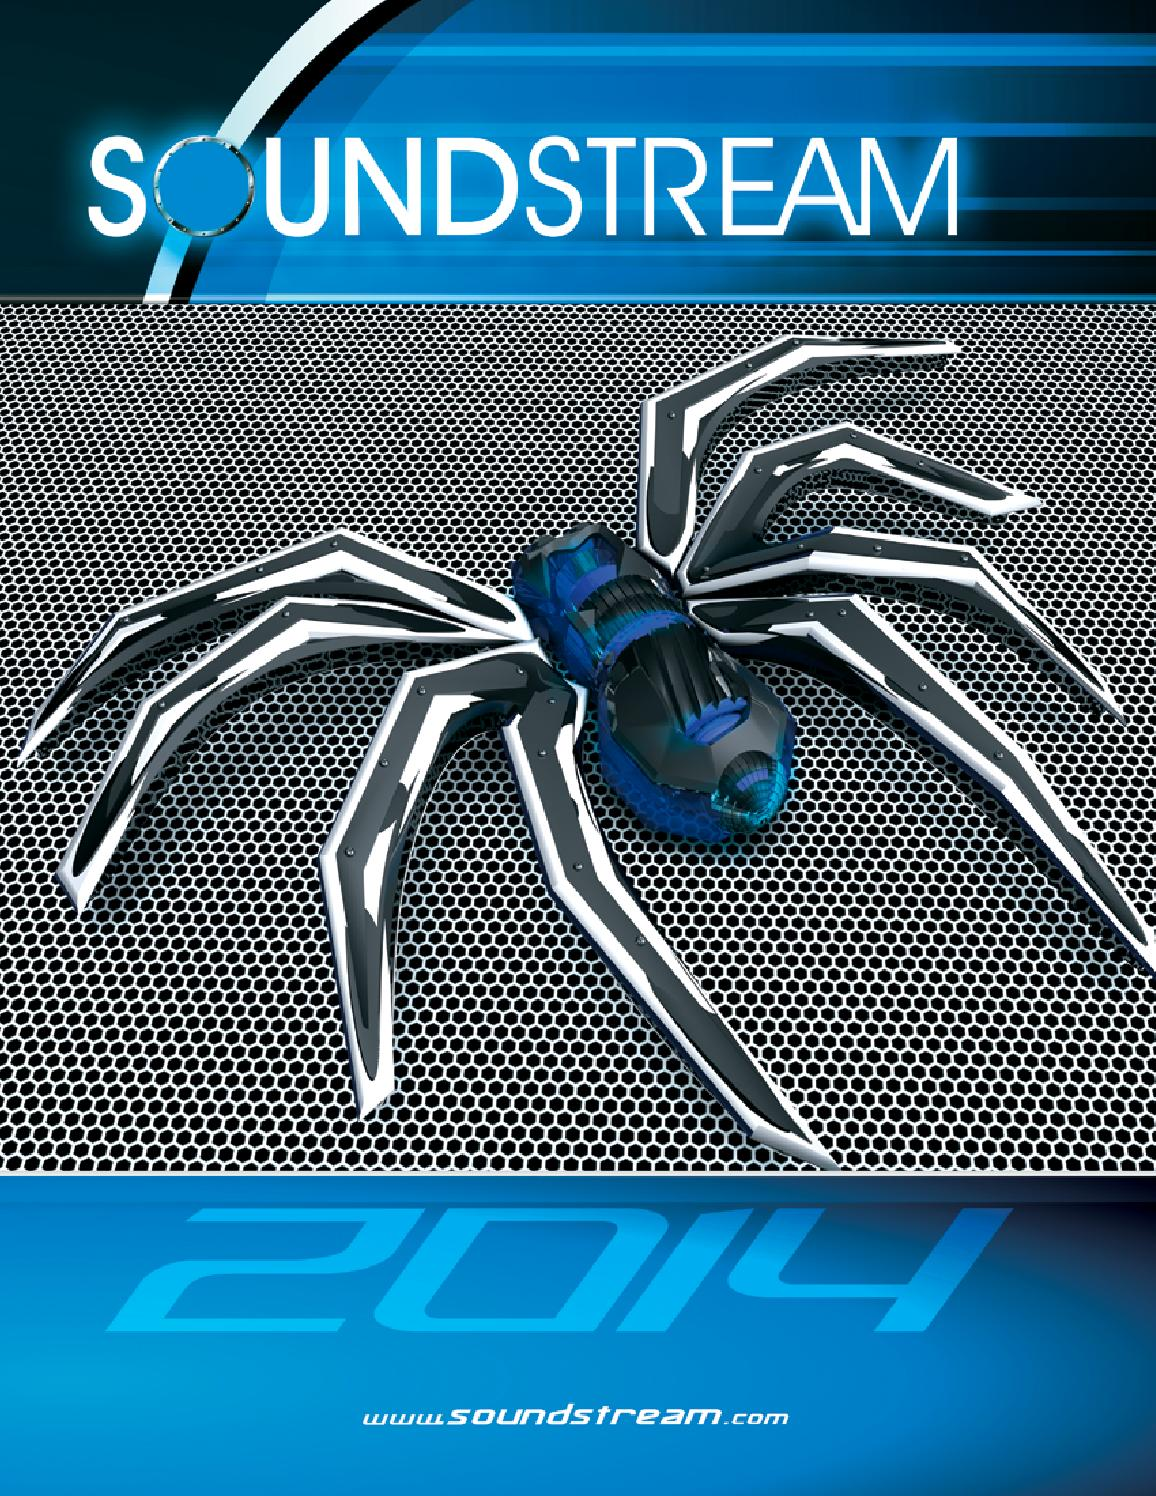 Soundstream 2014 Catalog By Kicker Middel East Issuu 210hz Subwoofer Processing Circuit Low Pass Filter Board Kit